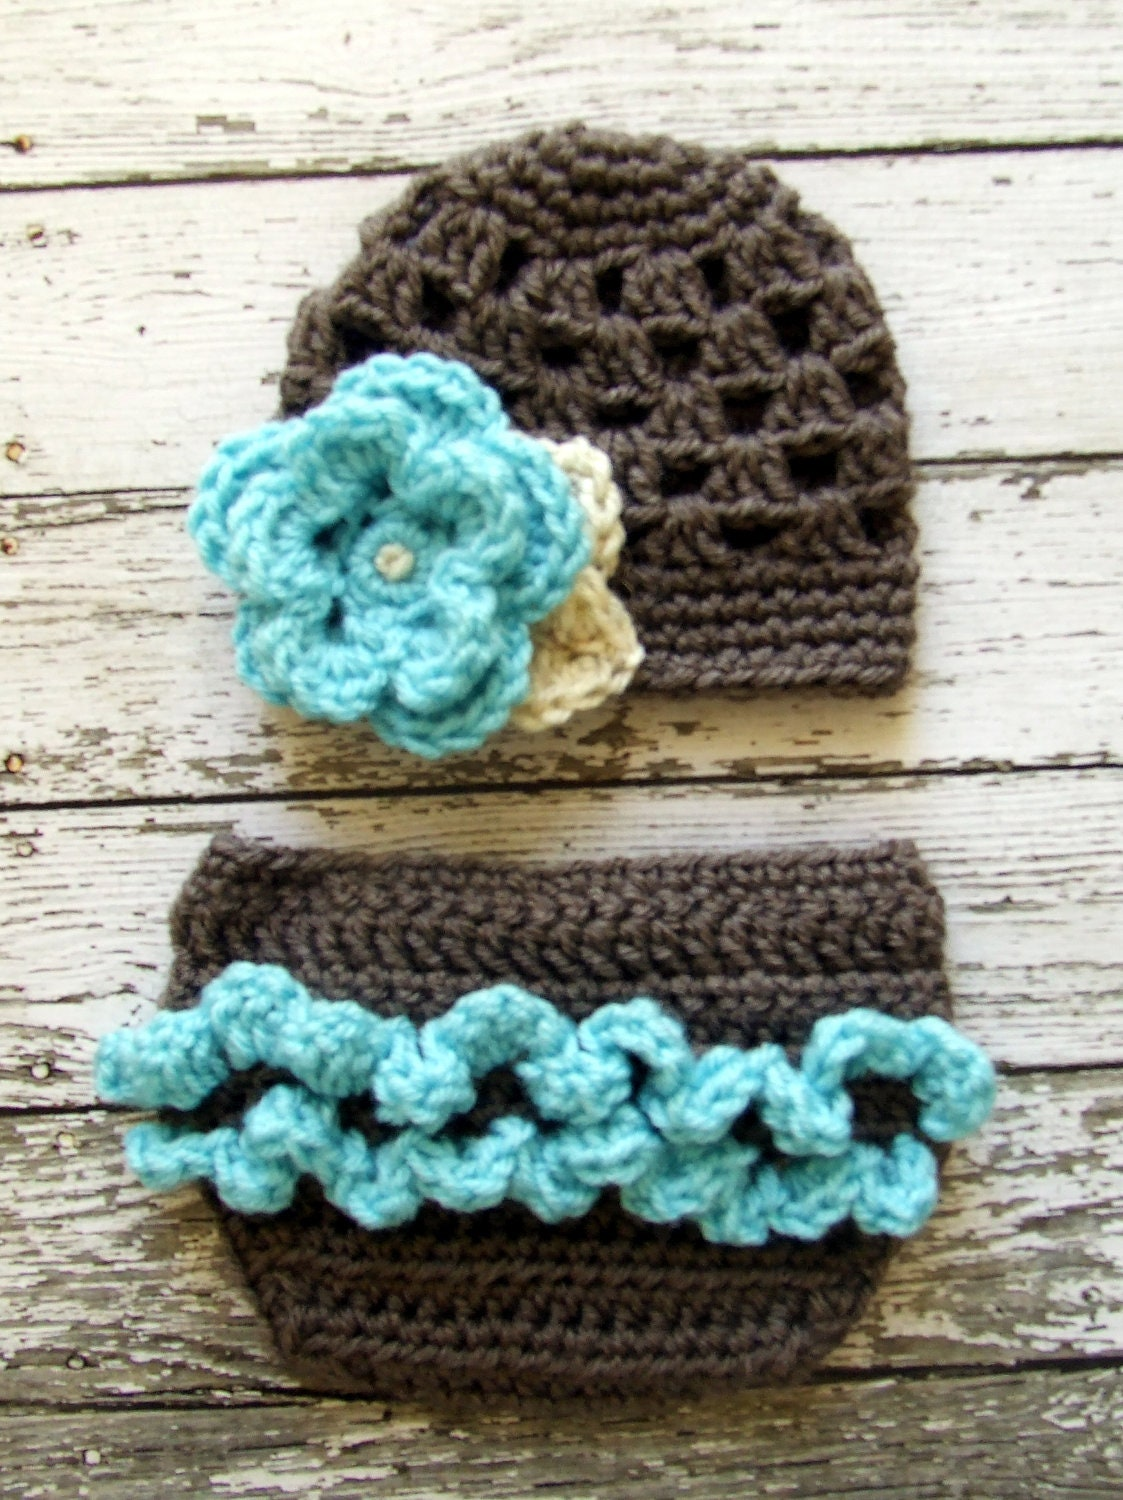 Free Crochet Pattern Diaper Cover With Ruffles : Diaper cover with ruffle.. - BabyCenter